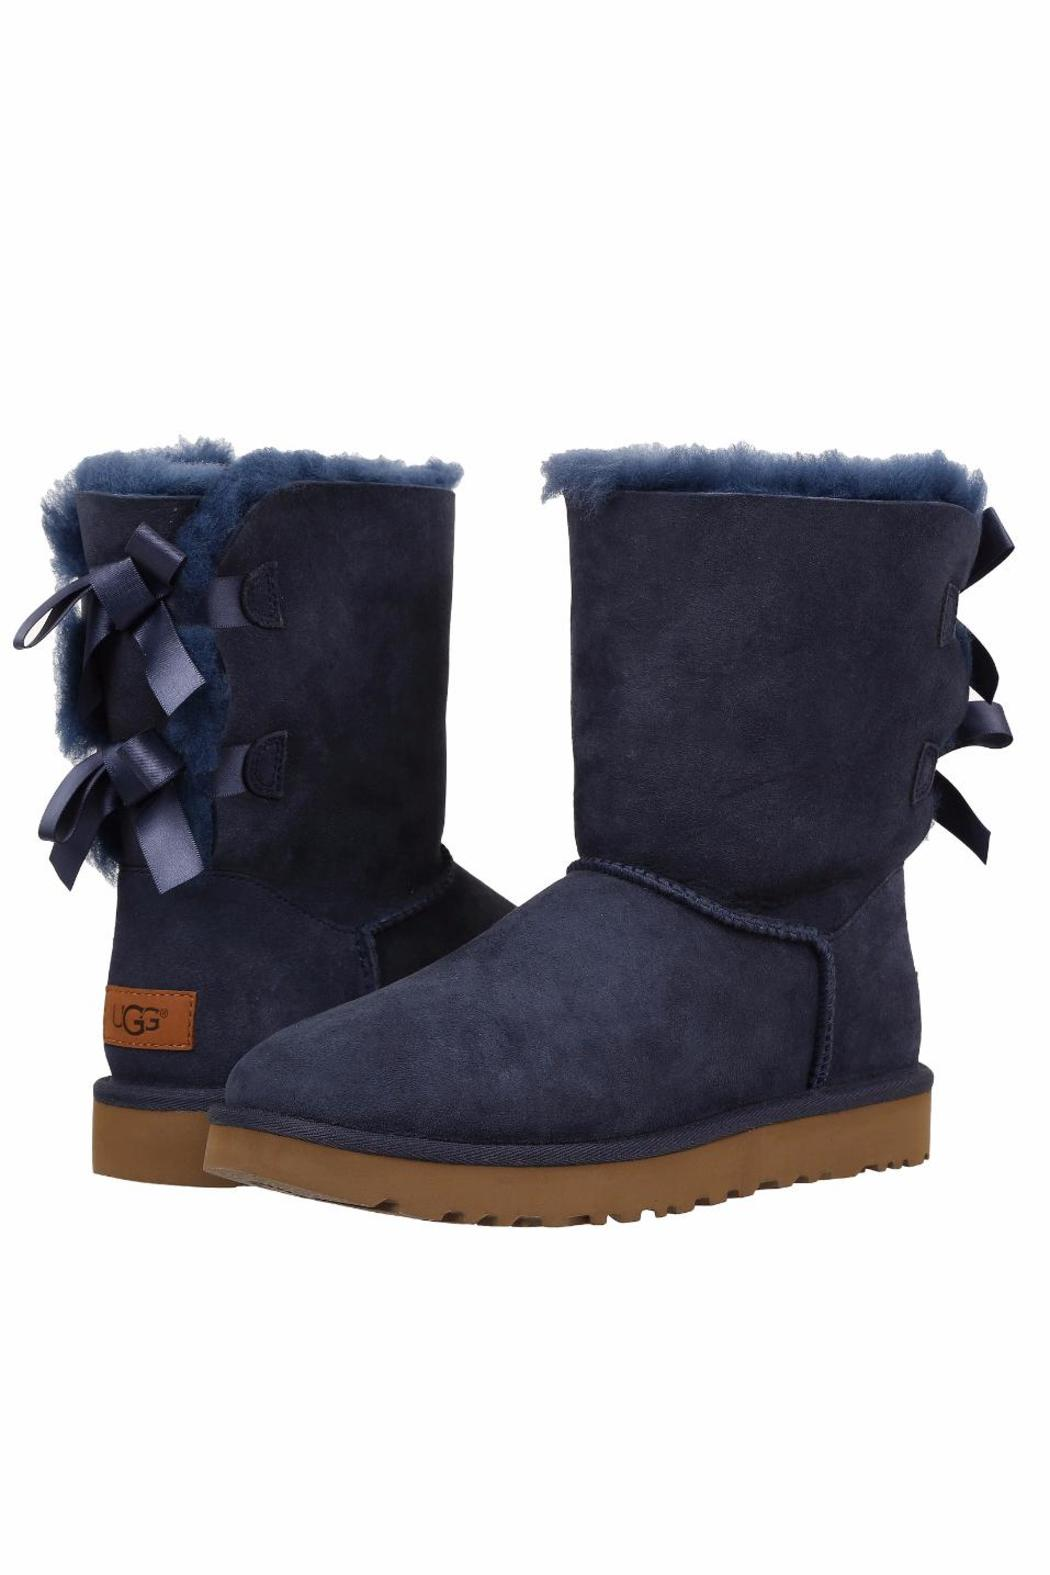 ugg toddler bailey bow nz